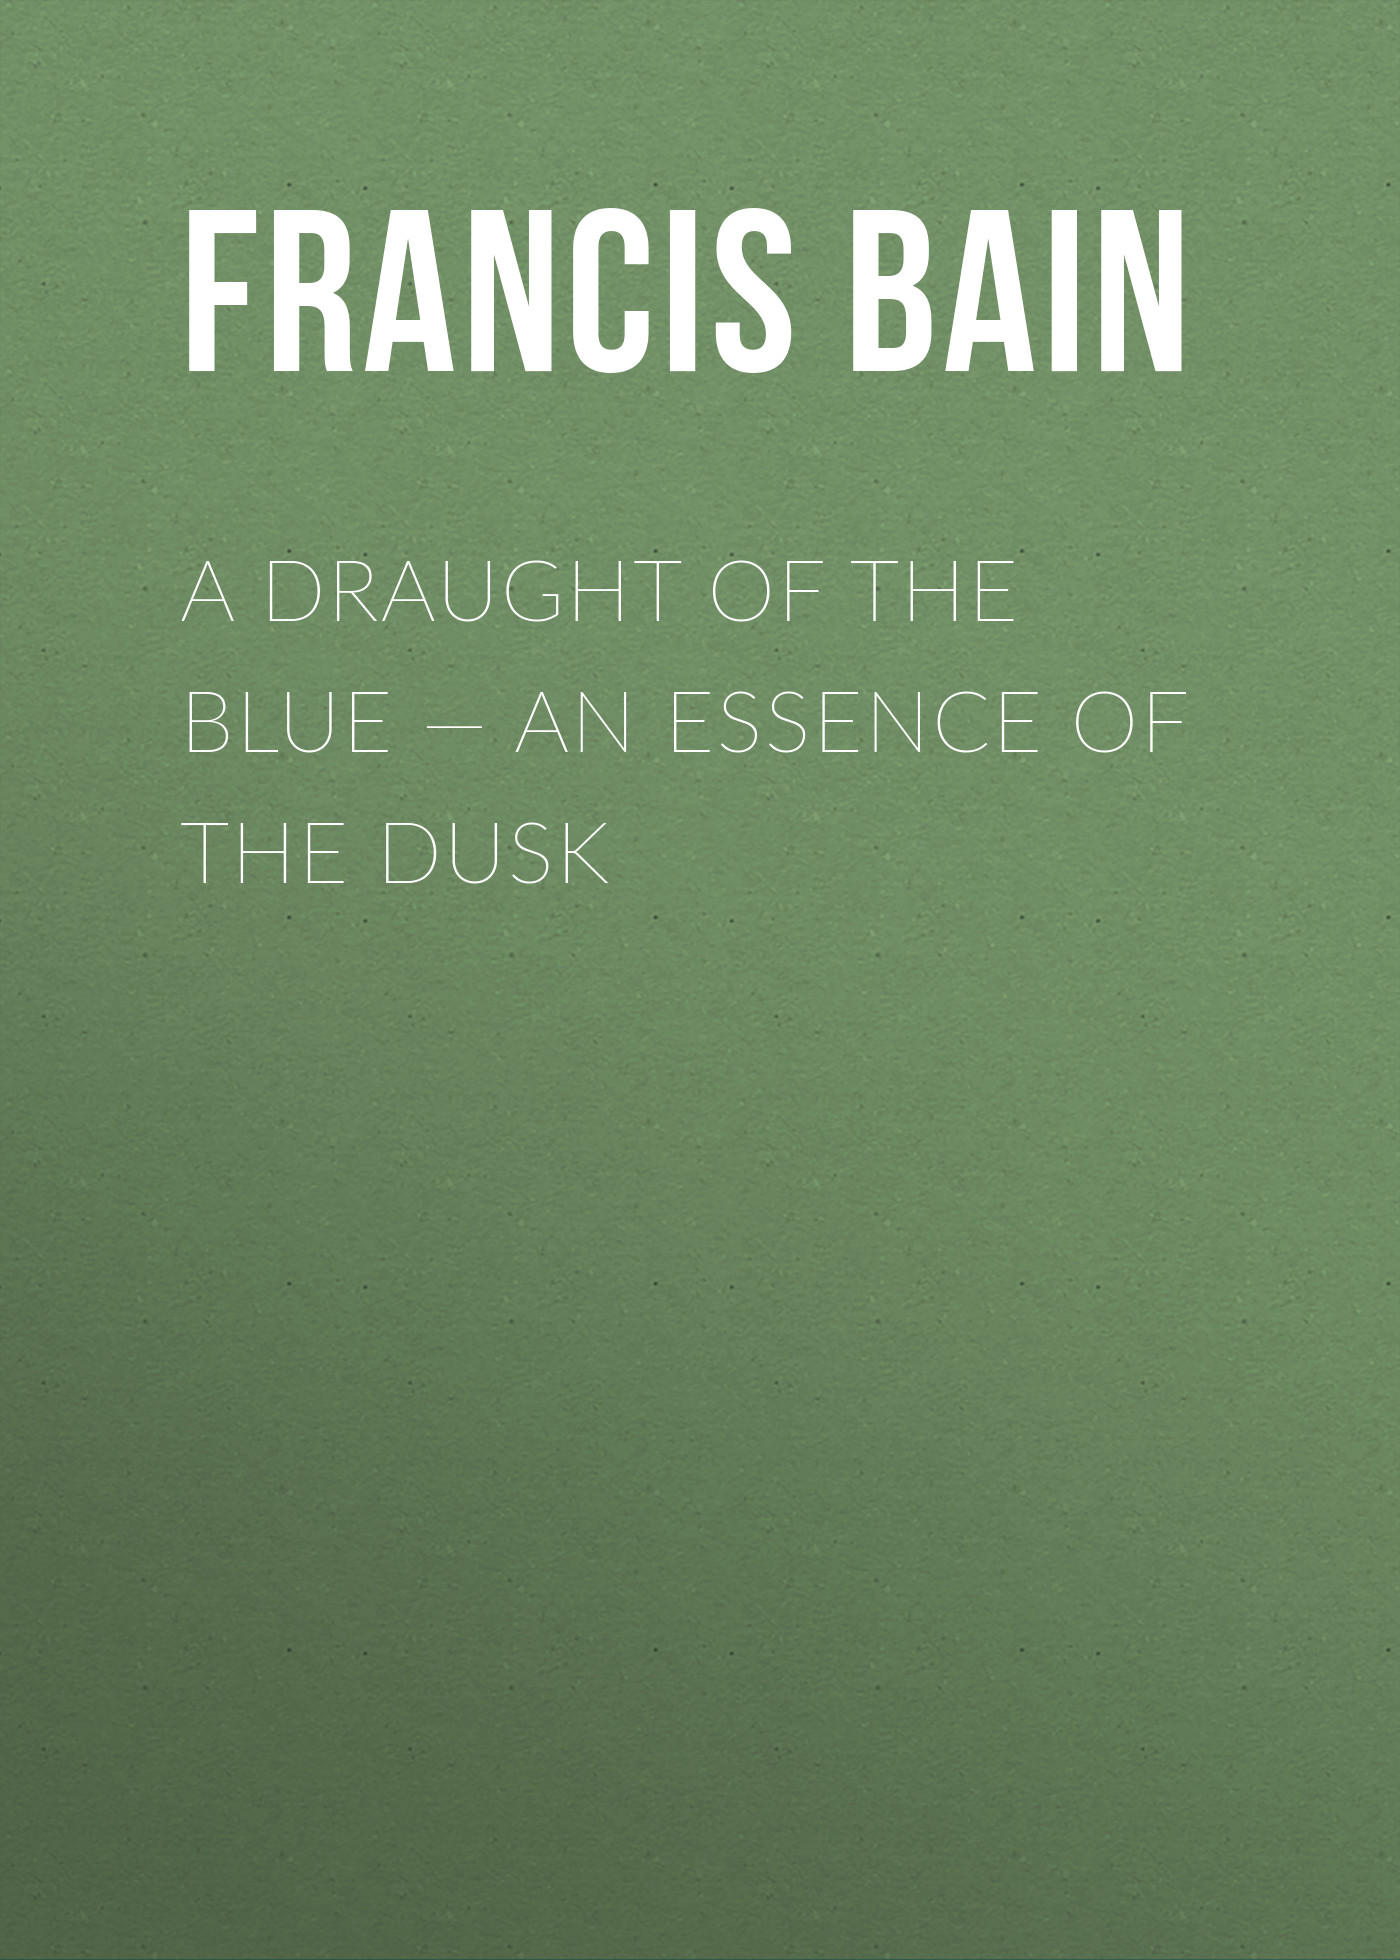 Bain Francis William A Draught of the Blue – An Essence of the Dusk заготовки для значков d58 мм булавка 50 шт